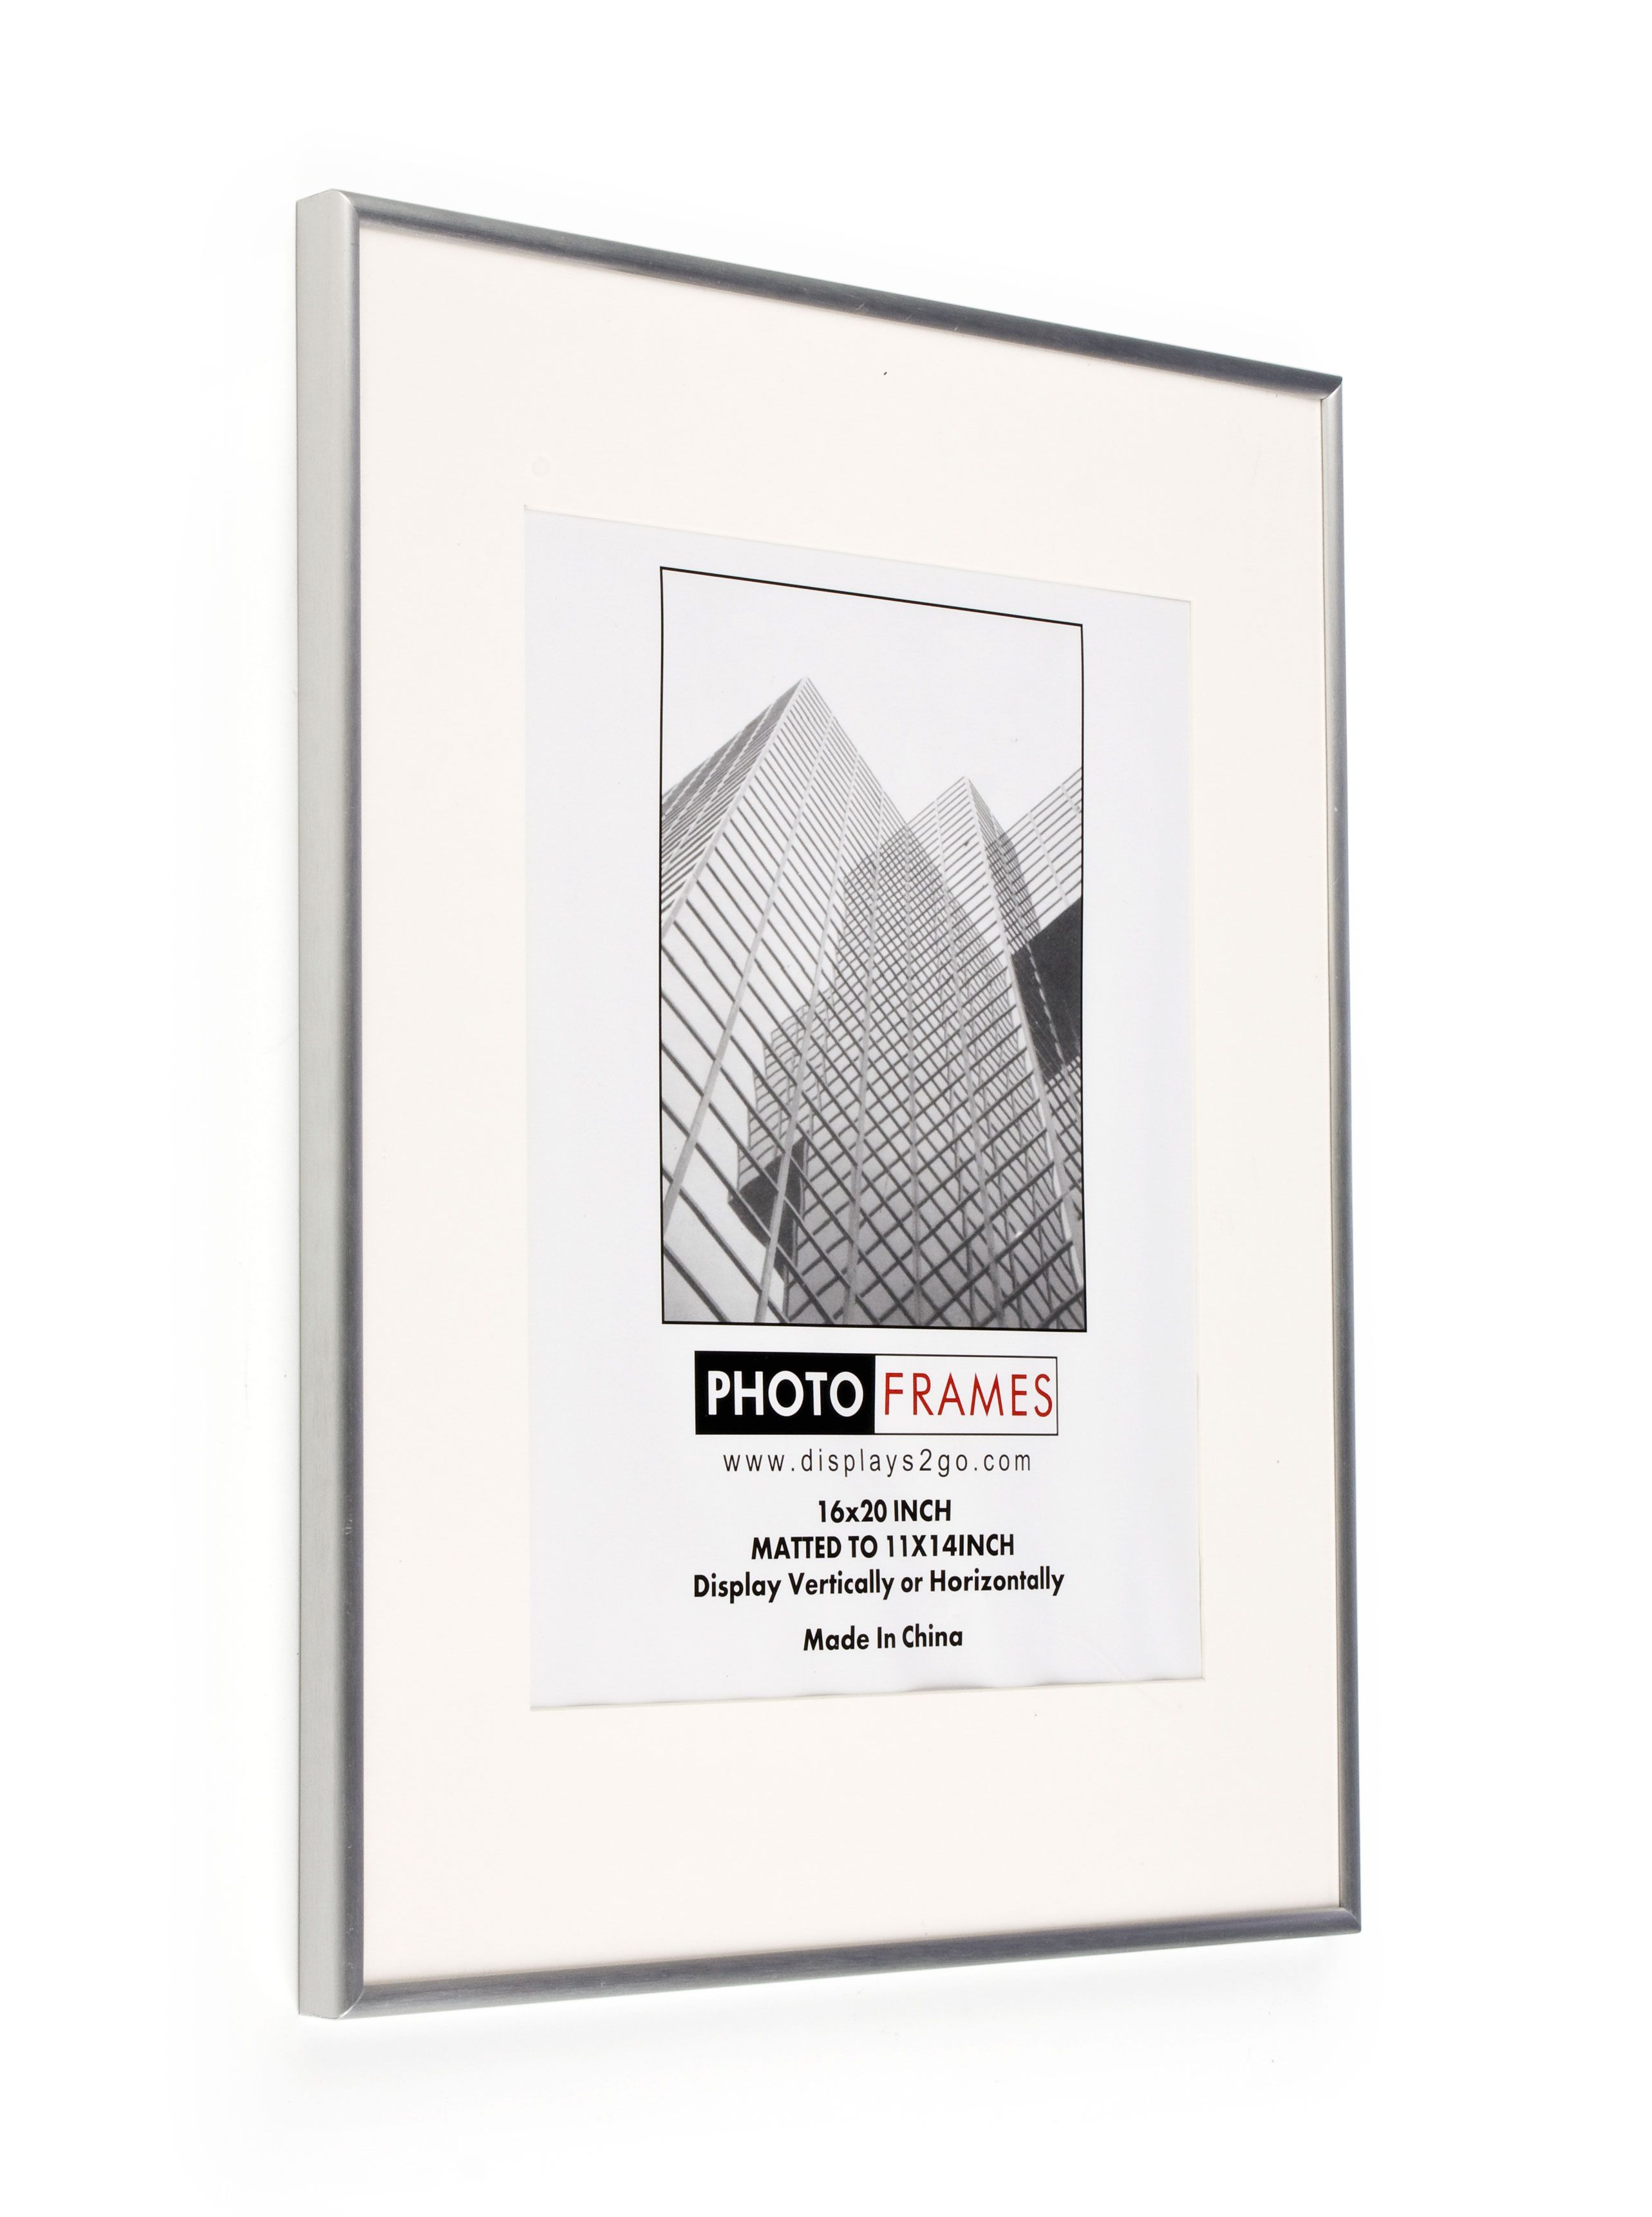 16 x 20 poster frame for wall matted to 11 x 14 white mat 38 16 x 20 poster frame for wall matted to 11 x 14 white mat jeuxipadfo Image collections